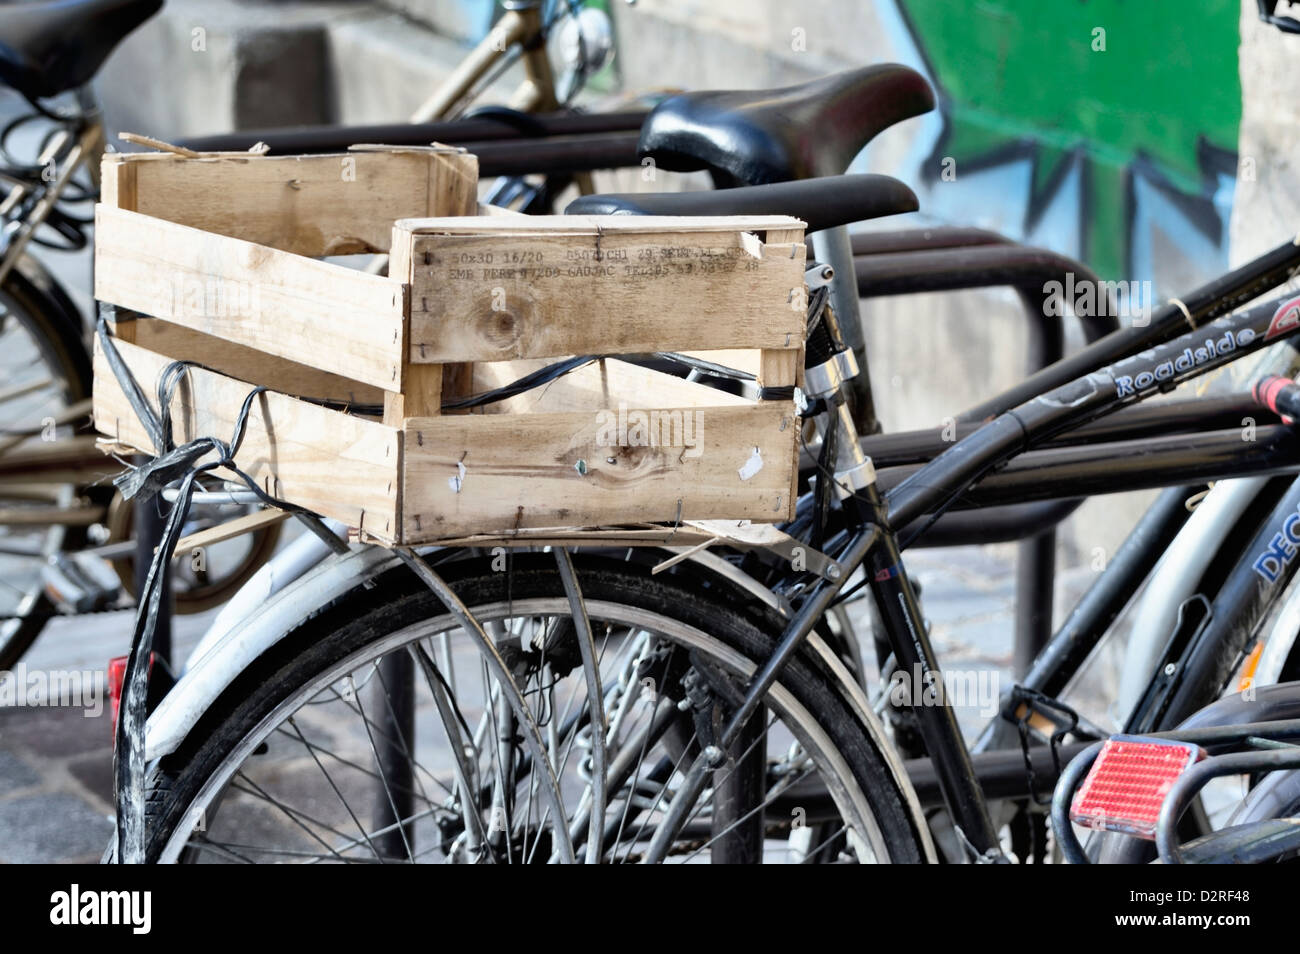 Wooden Crate Used As Improvised Bike Luggage Carrier Box Stock Photo